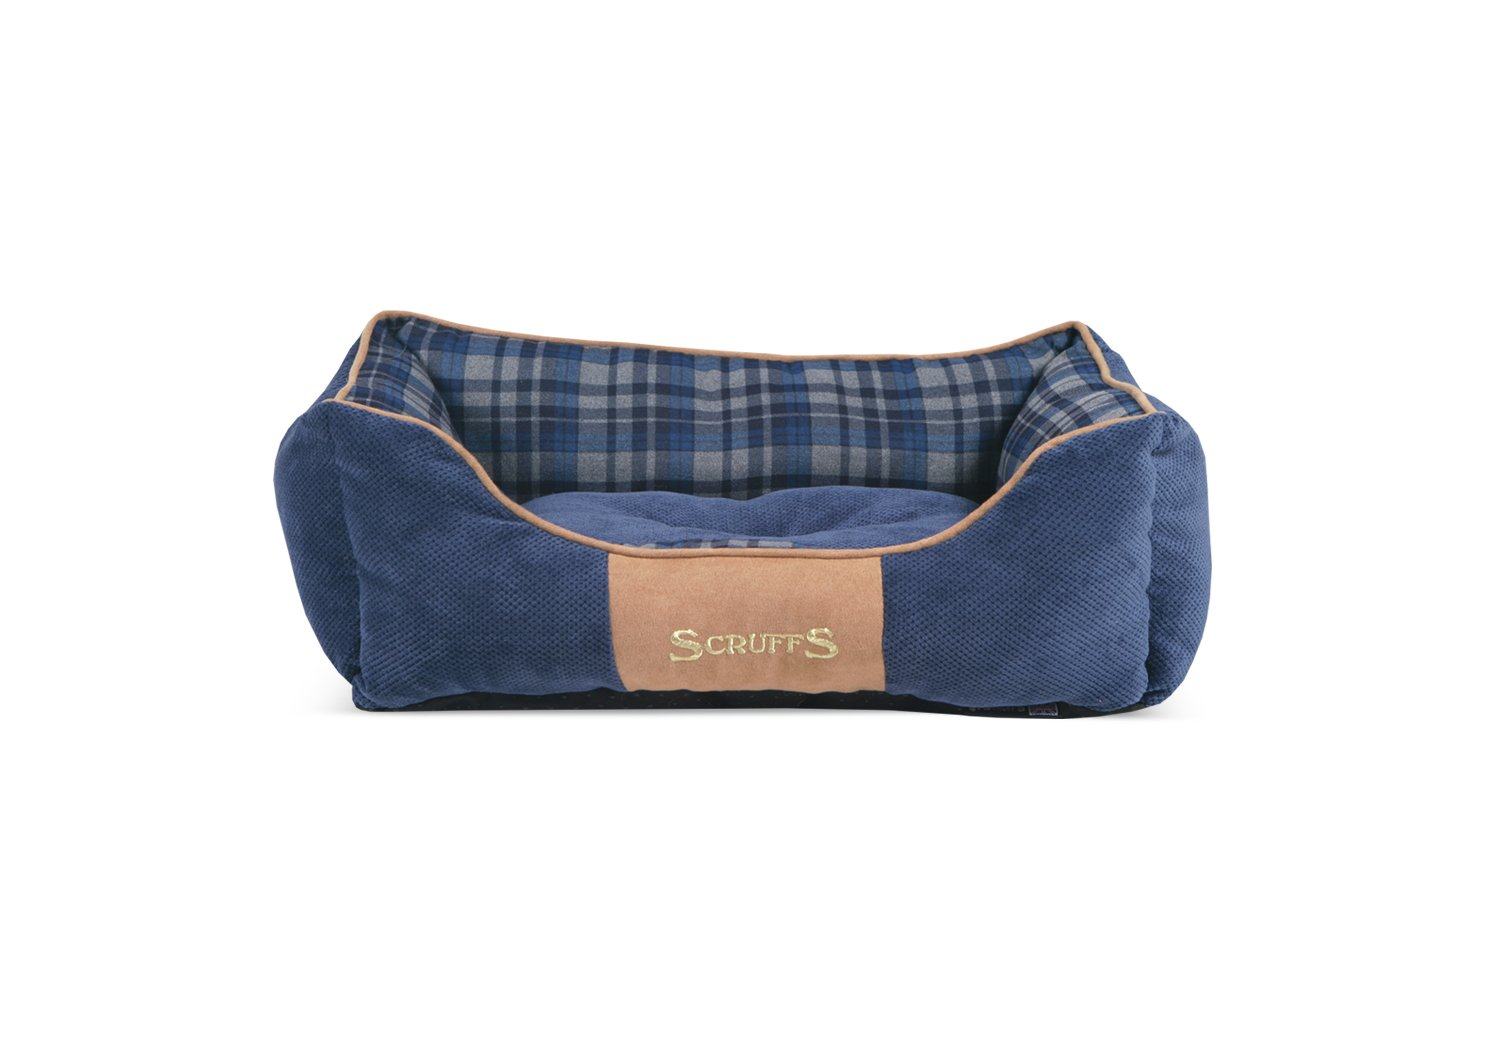 bluee Small,Box Bed bluee Small,Box Bed Scruffs 19.5  x 16  Highland Pet Box Bed, bluee